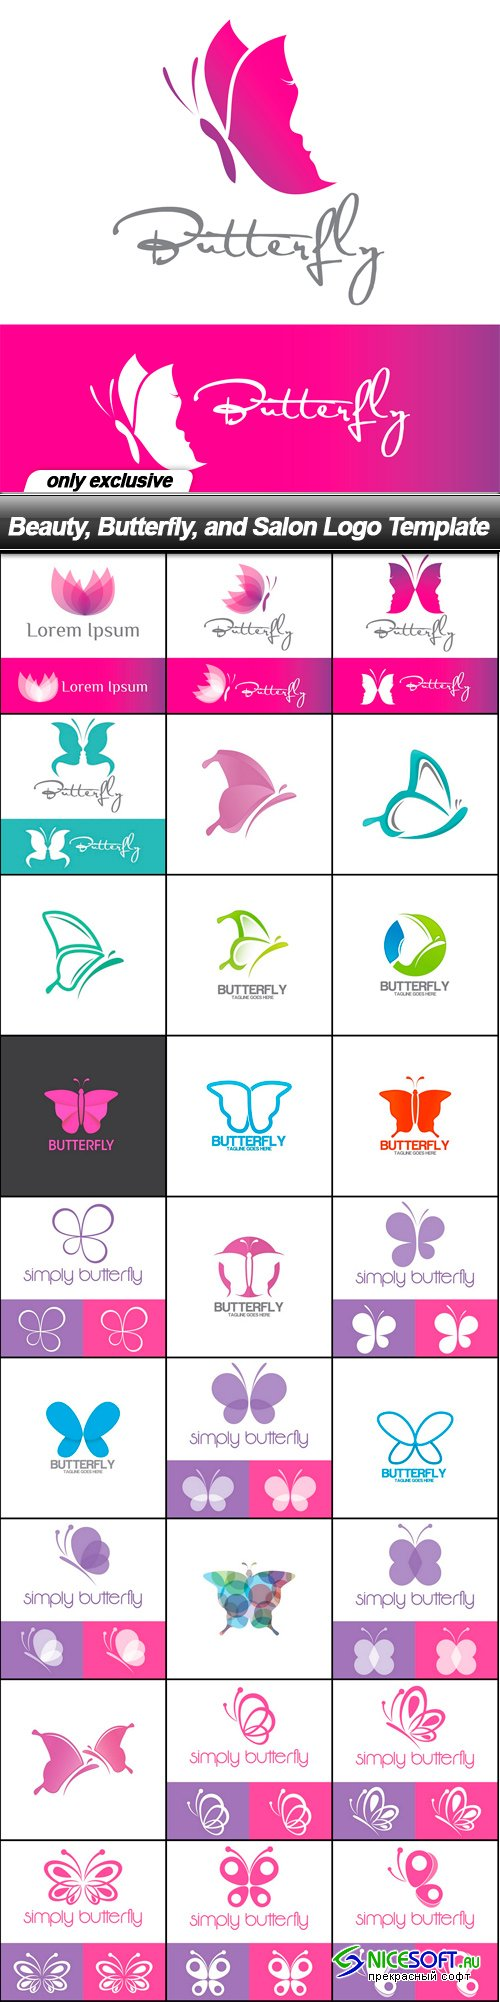 Beauty, Butterfly, and Salon Logo Template